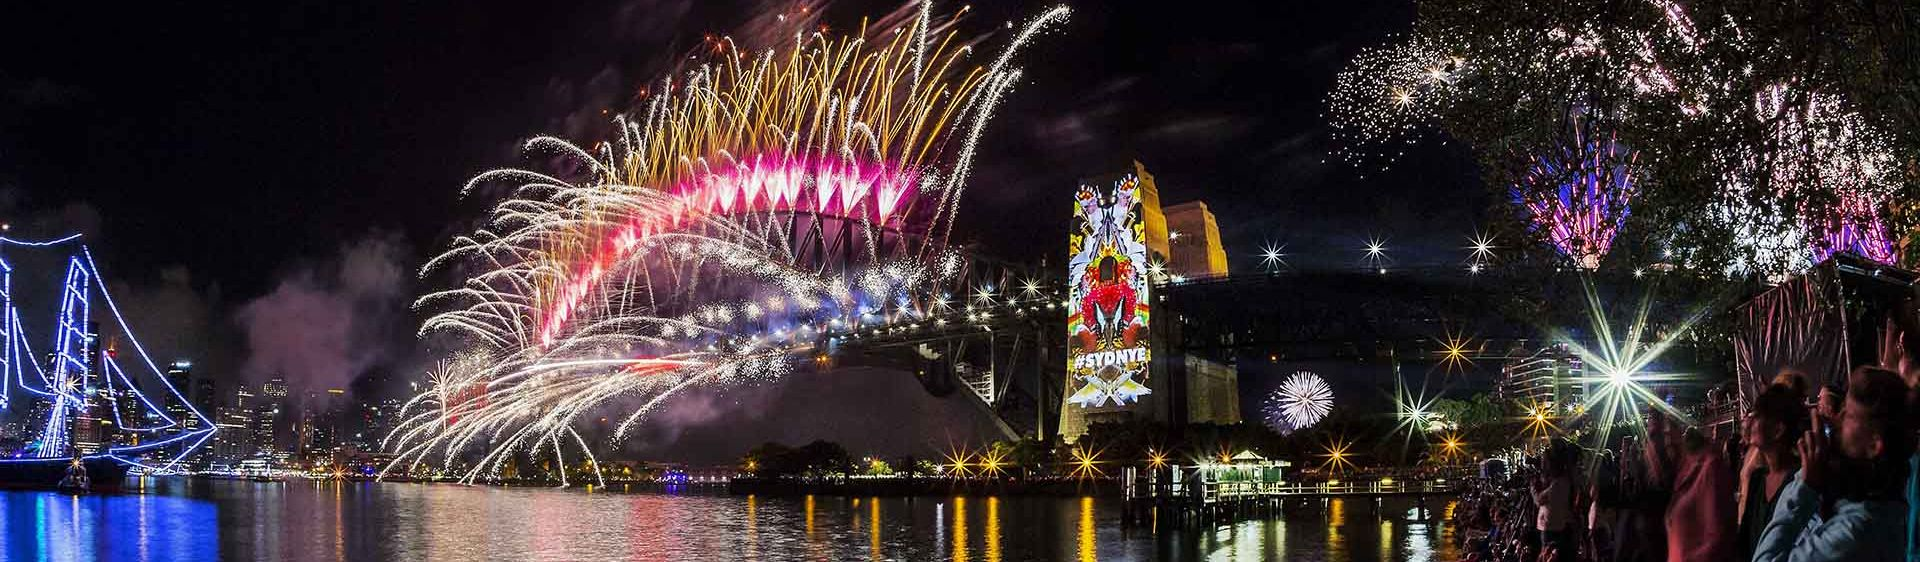 Sydney Harbour Bridge on New Year's Eve